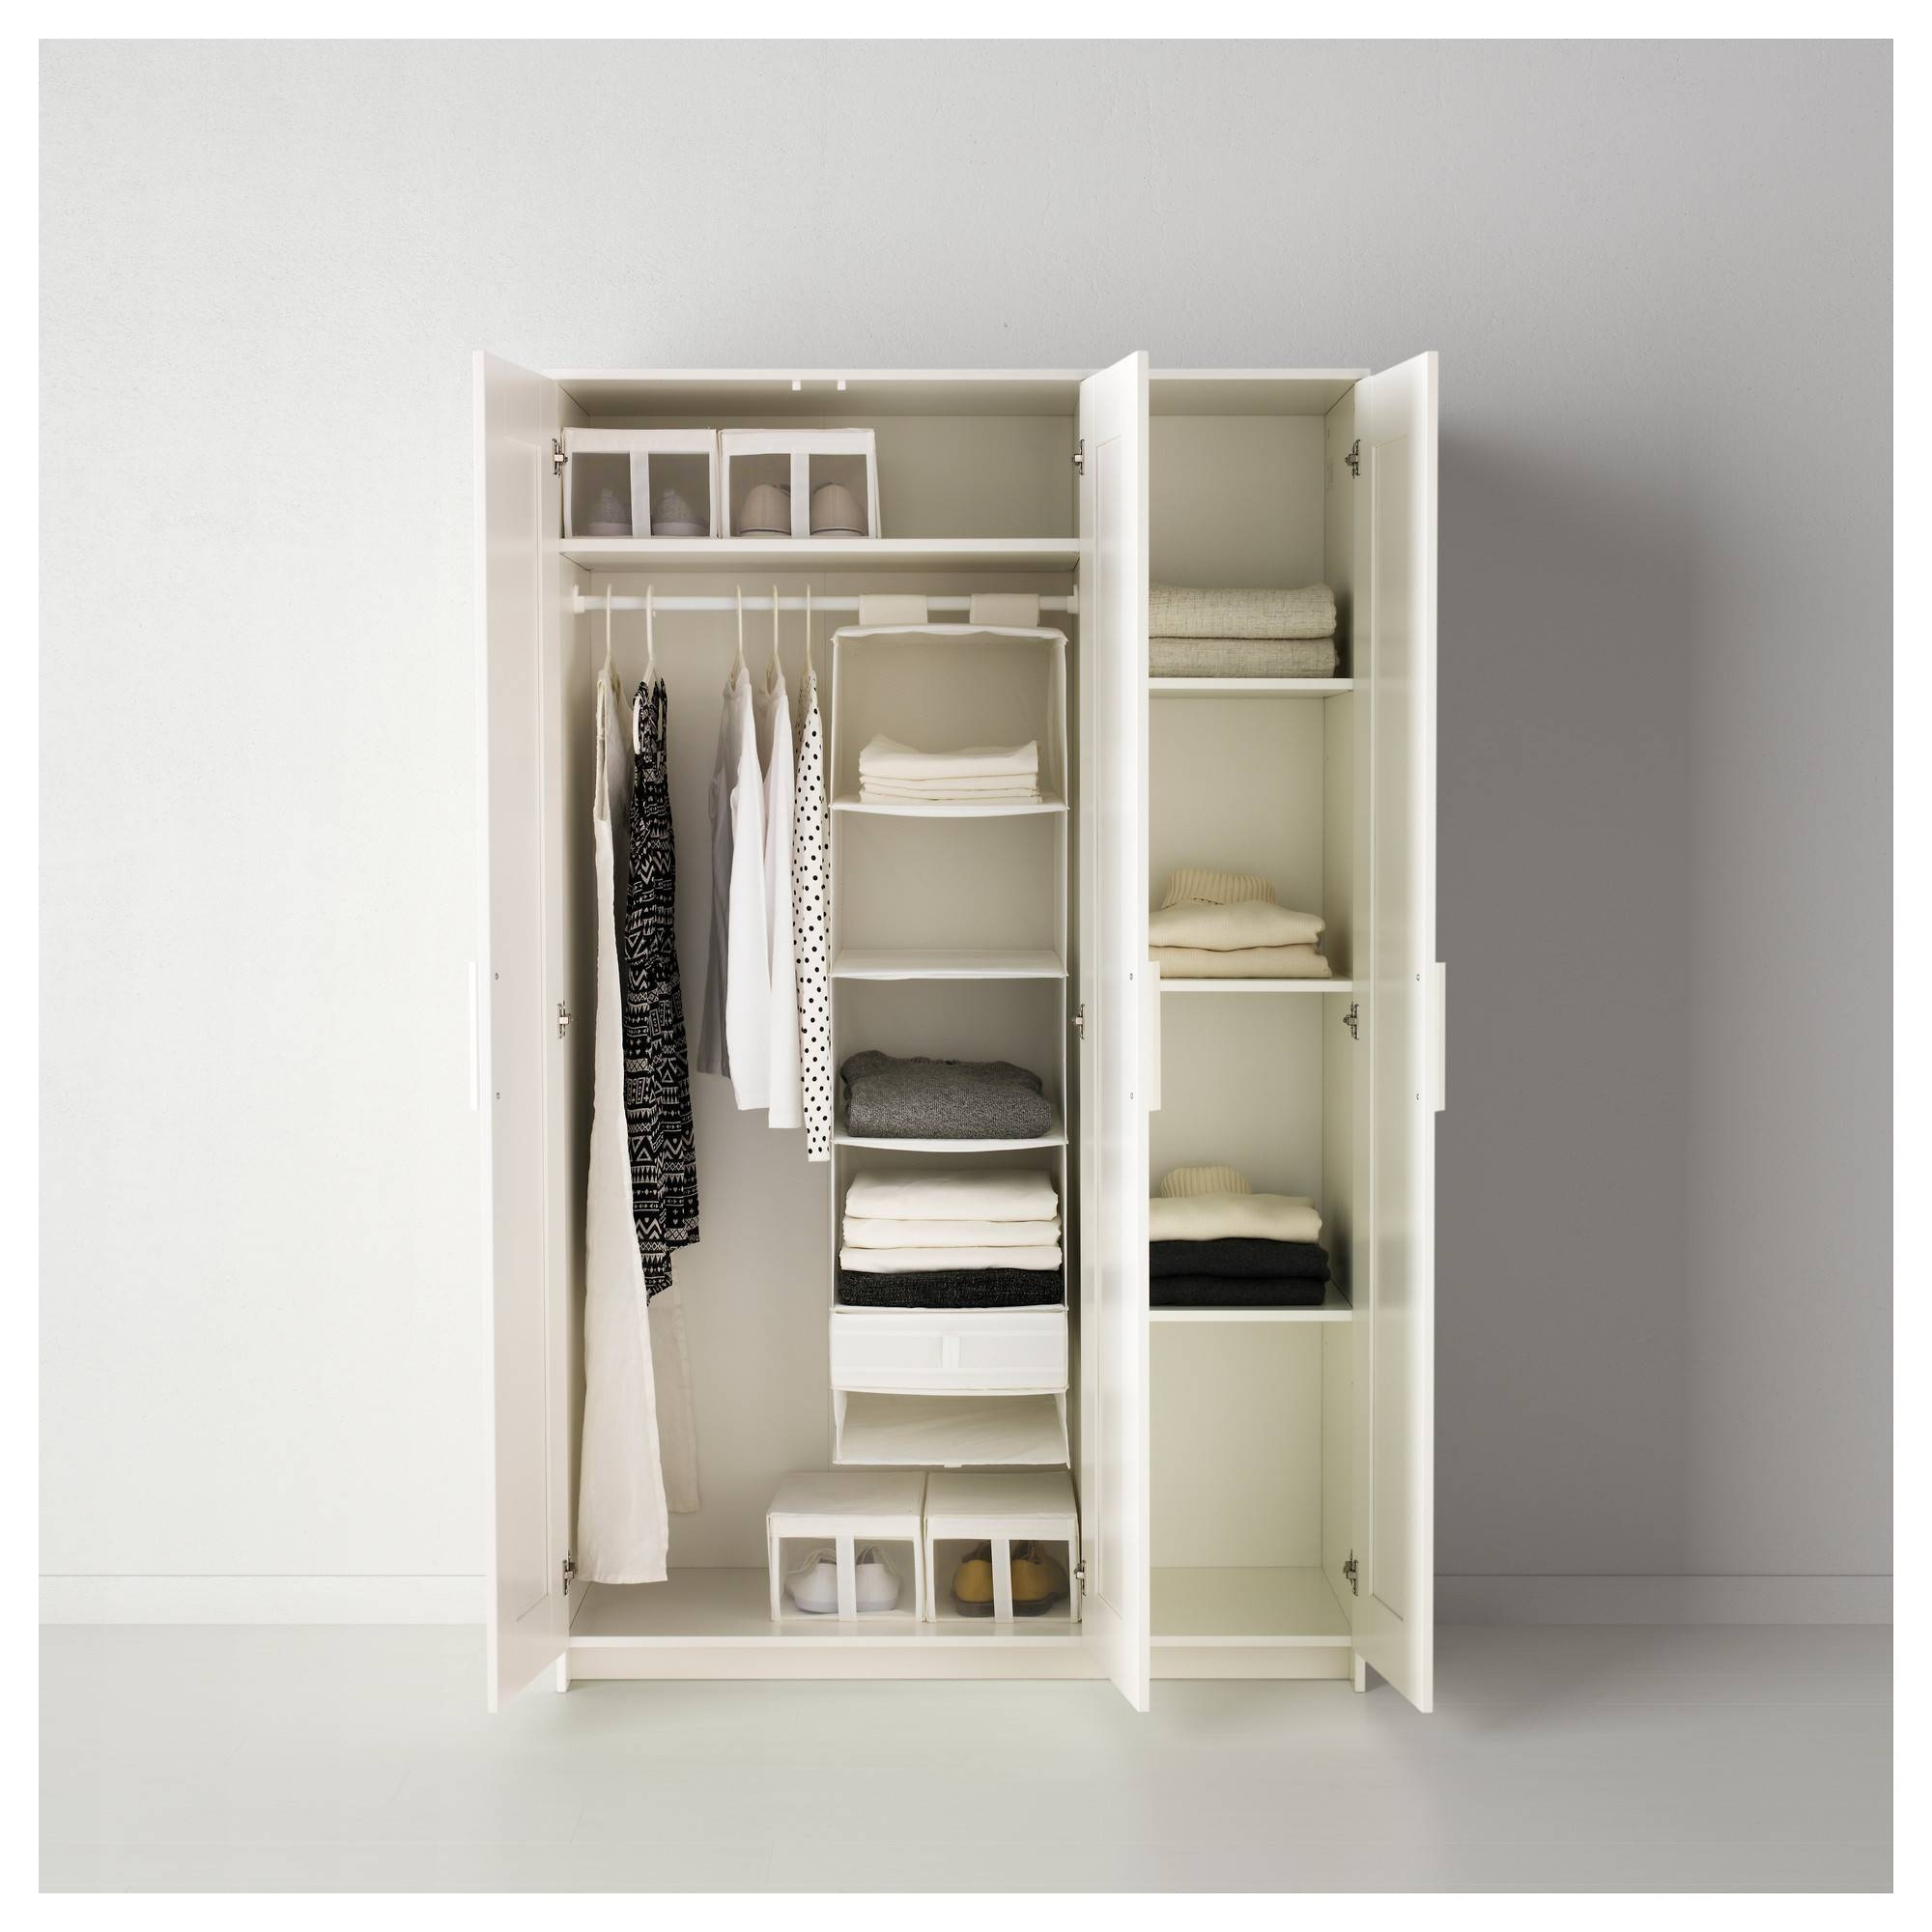 Brimnes Wardrobe With 3 Doors - White - Ikea inside 3 Door Wardrobe With Drawers And Shelves (Image 7 of 30)